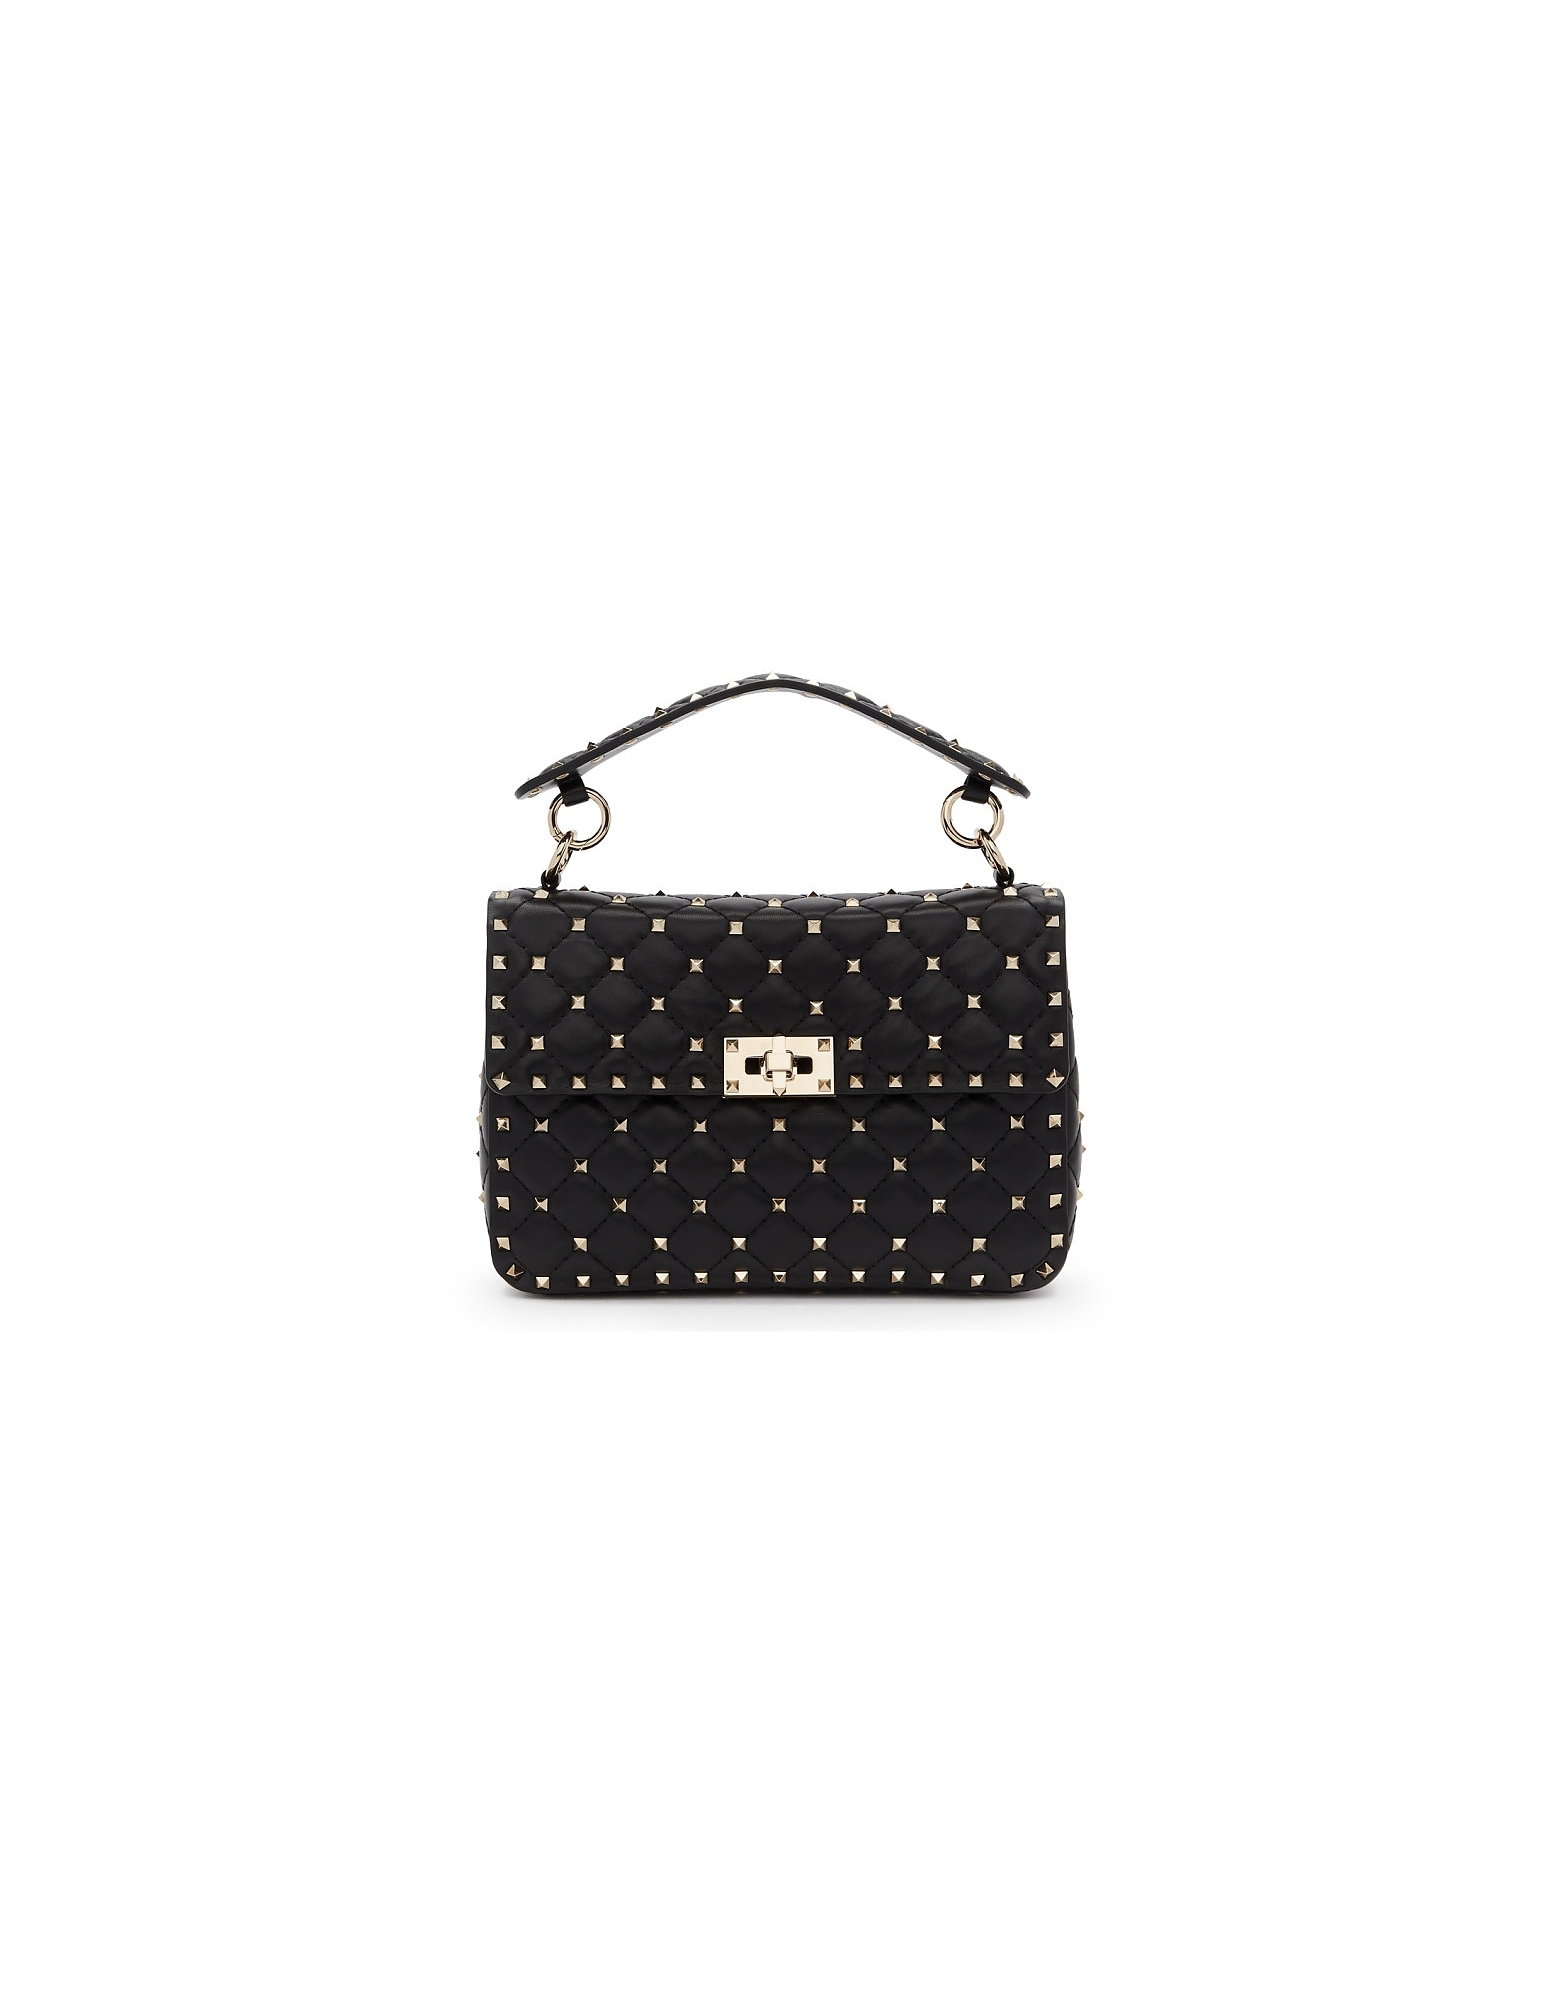 Valentino Designer Handbags, Black Valentino Garavani Medium Rockstud Spike Bag